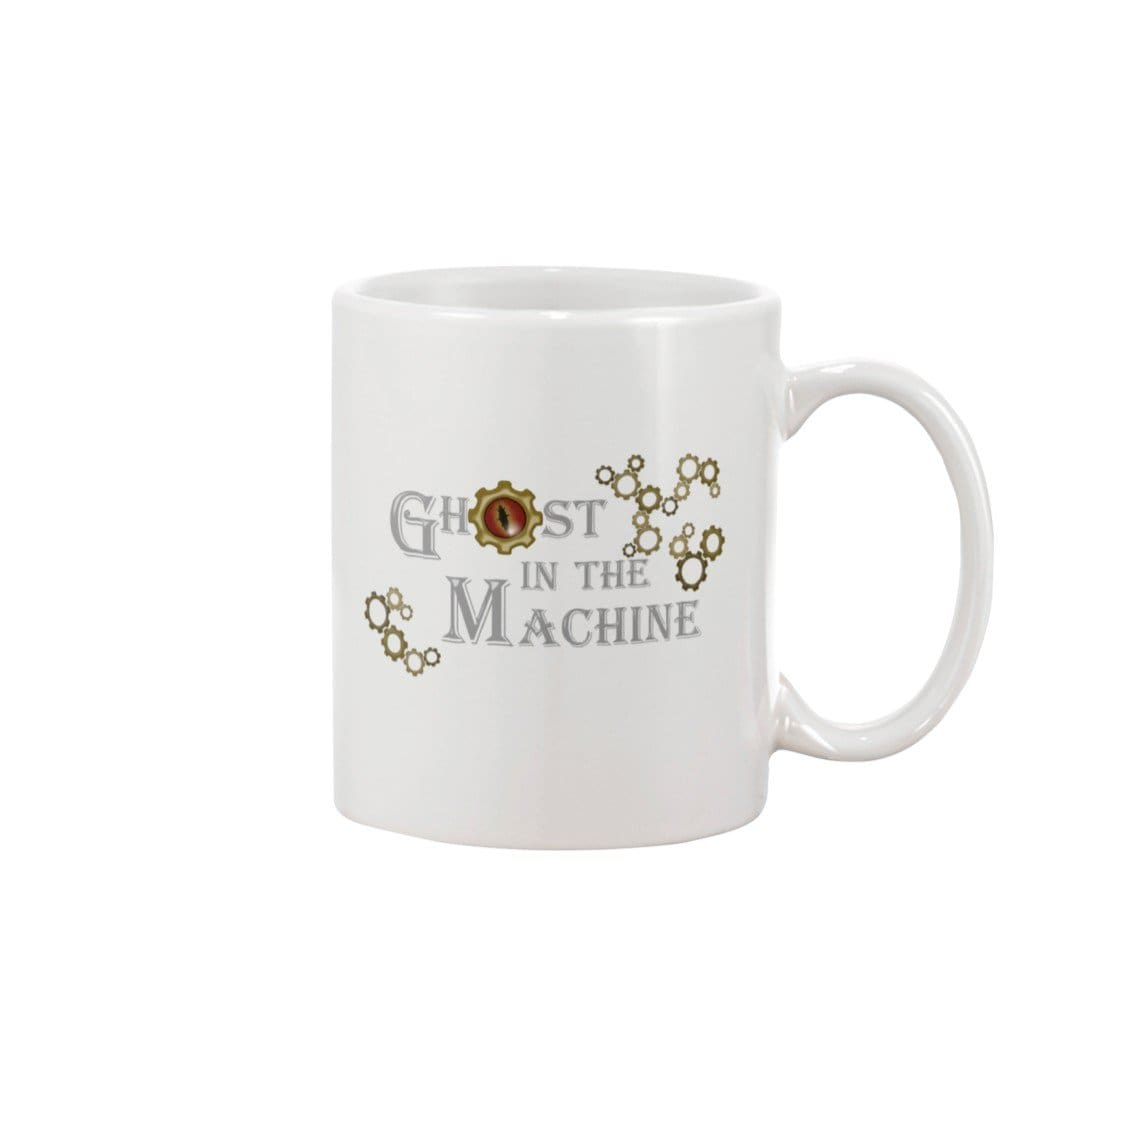 Dice Priori Ghost in the Machine Gears 15oz Coffee Mug - Dice Priori